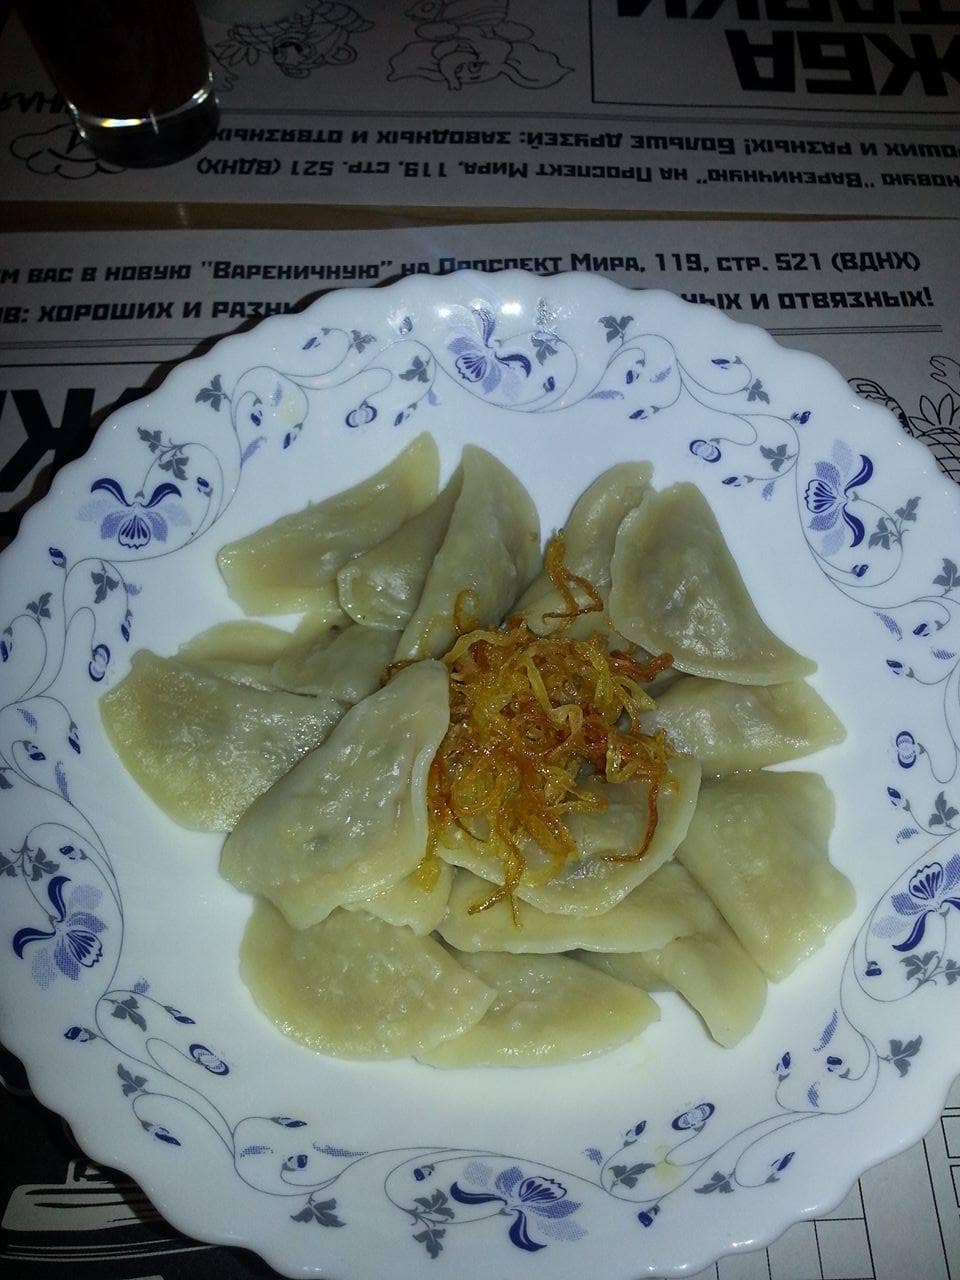 Pelmeni is typical to eat when travel Russia. things to do in Kazkhstan, kazakhstan travel guide, places to visit in kazakhstan, Kazakhstan travel itinerary